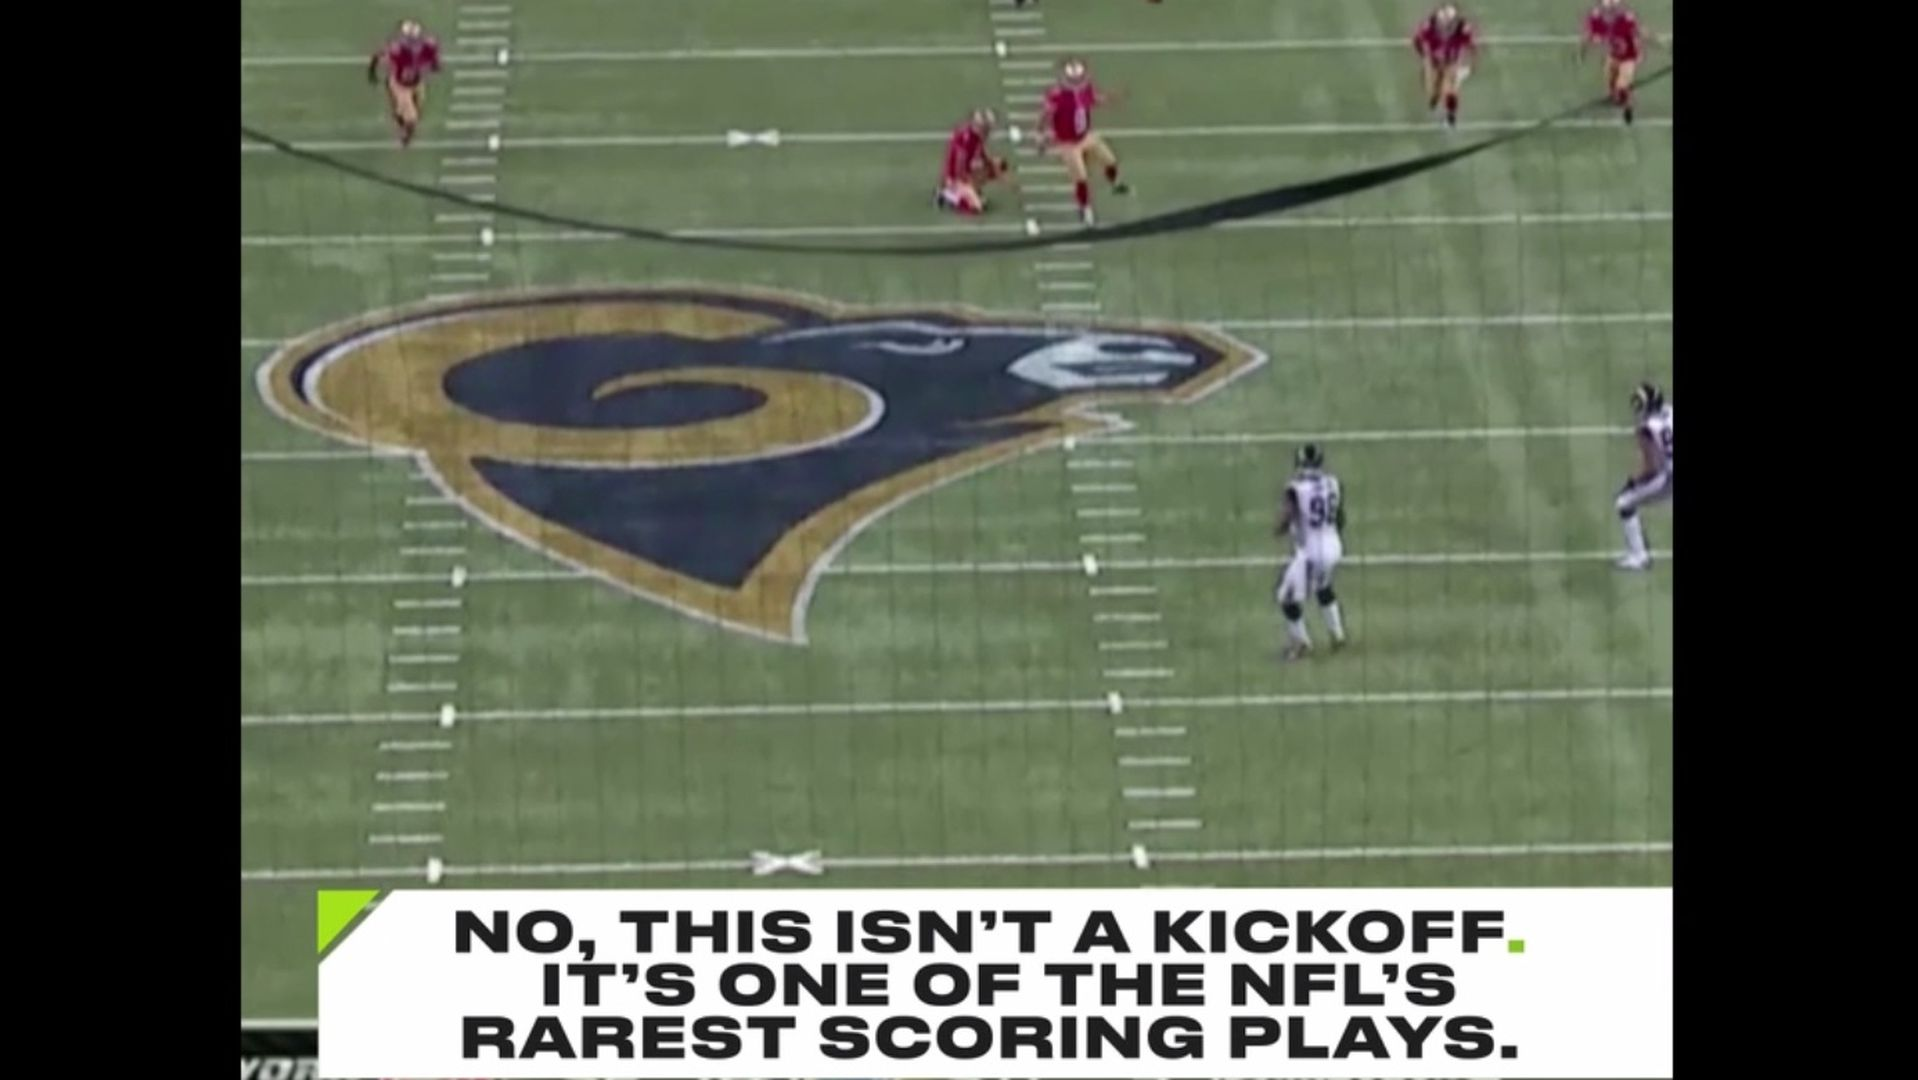 This weird NFL rule lets you score 3 points without kicking